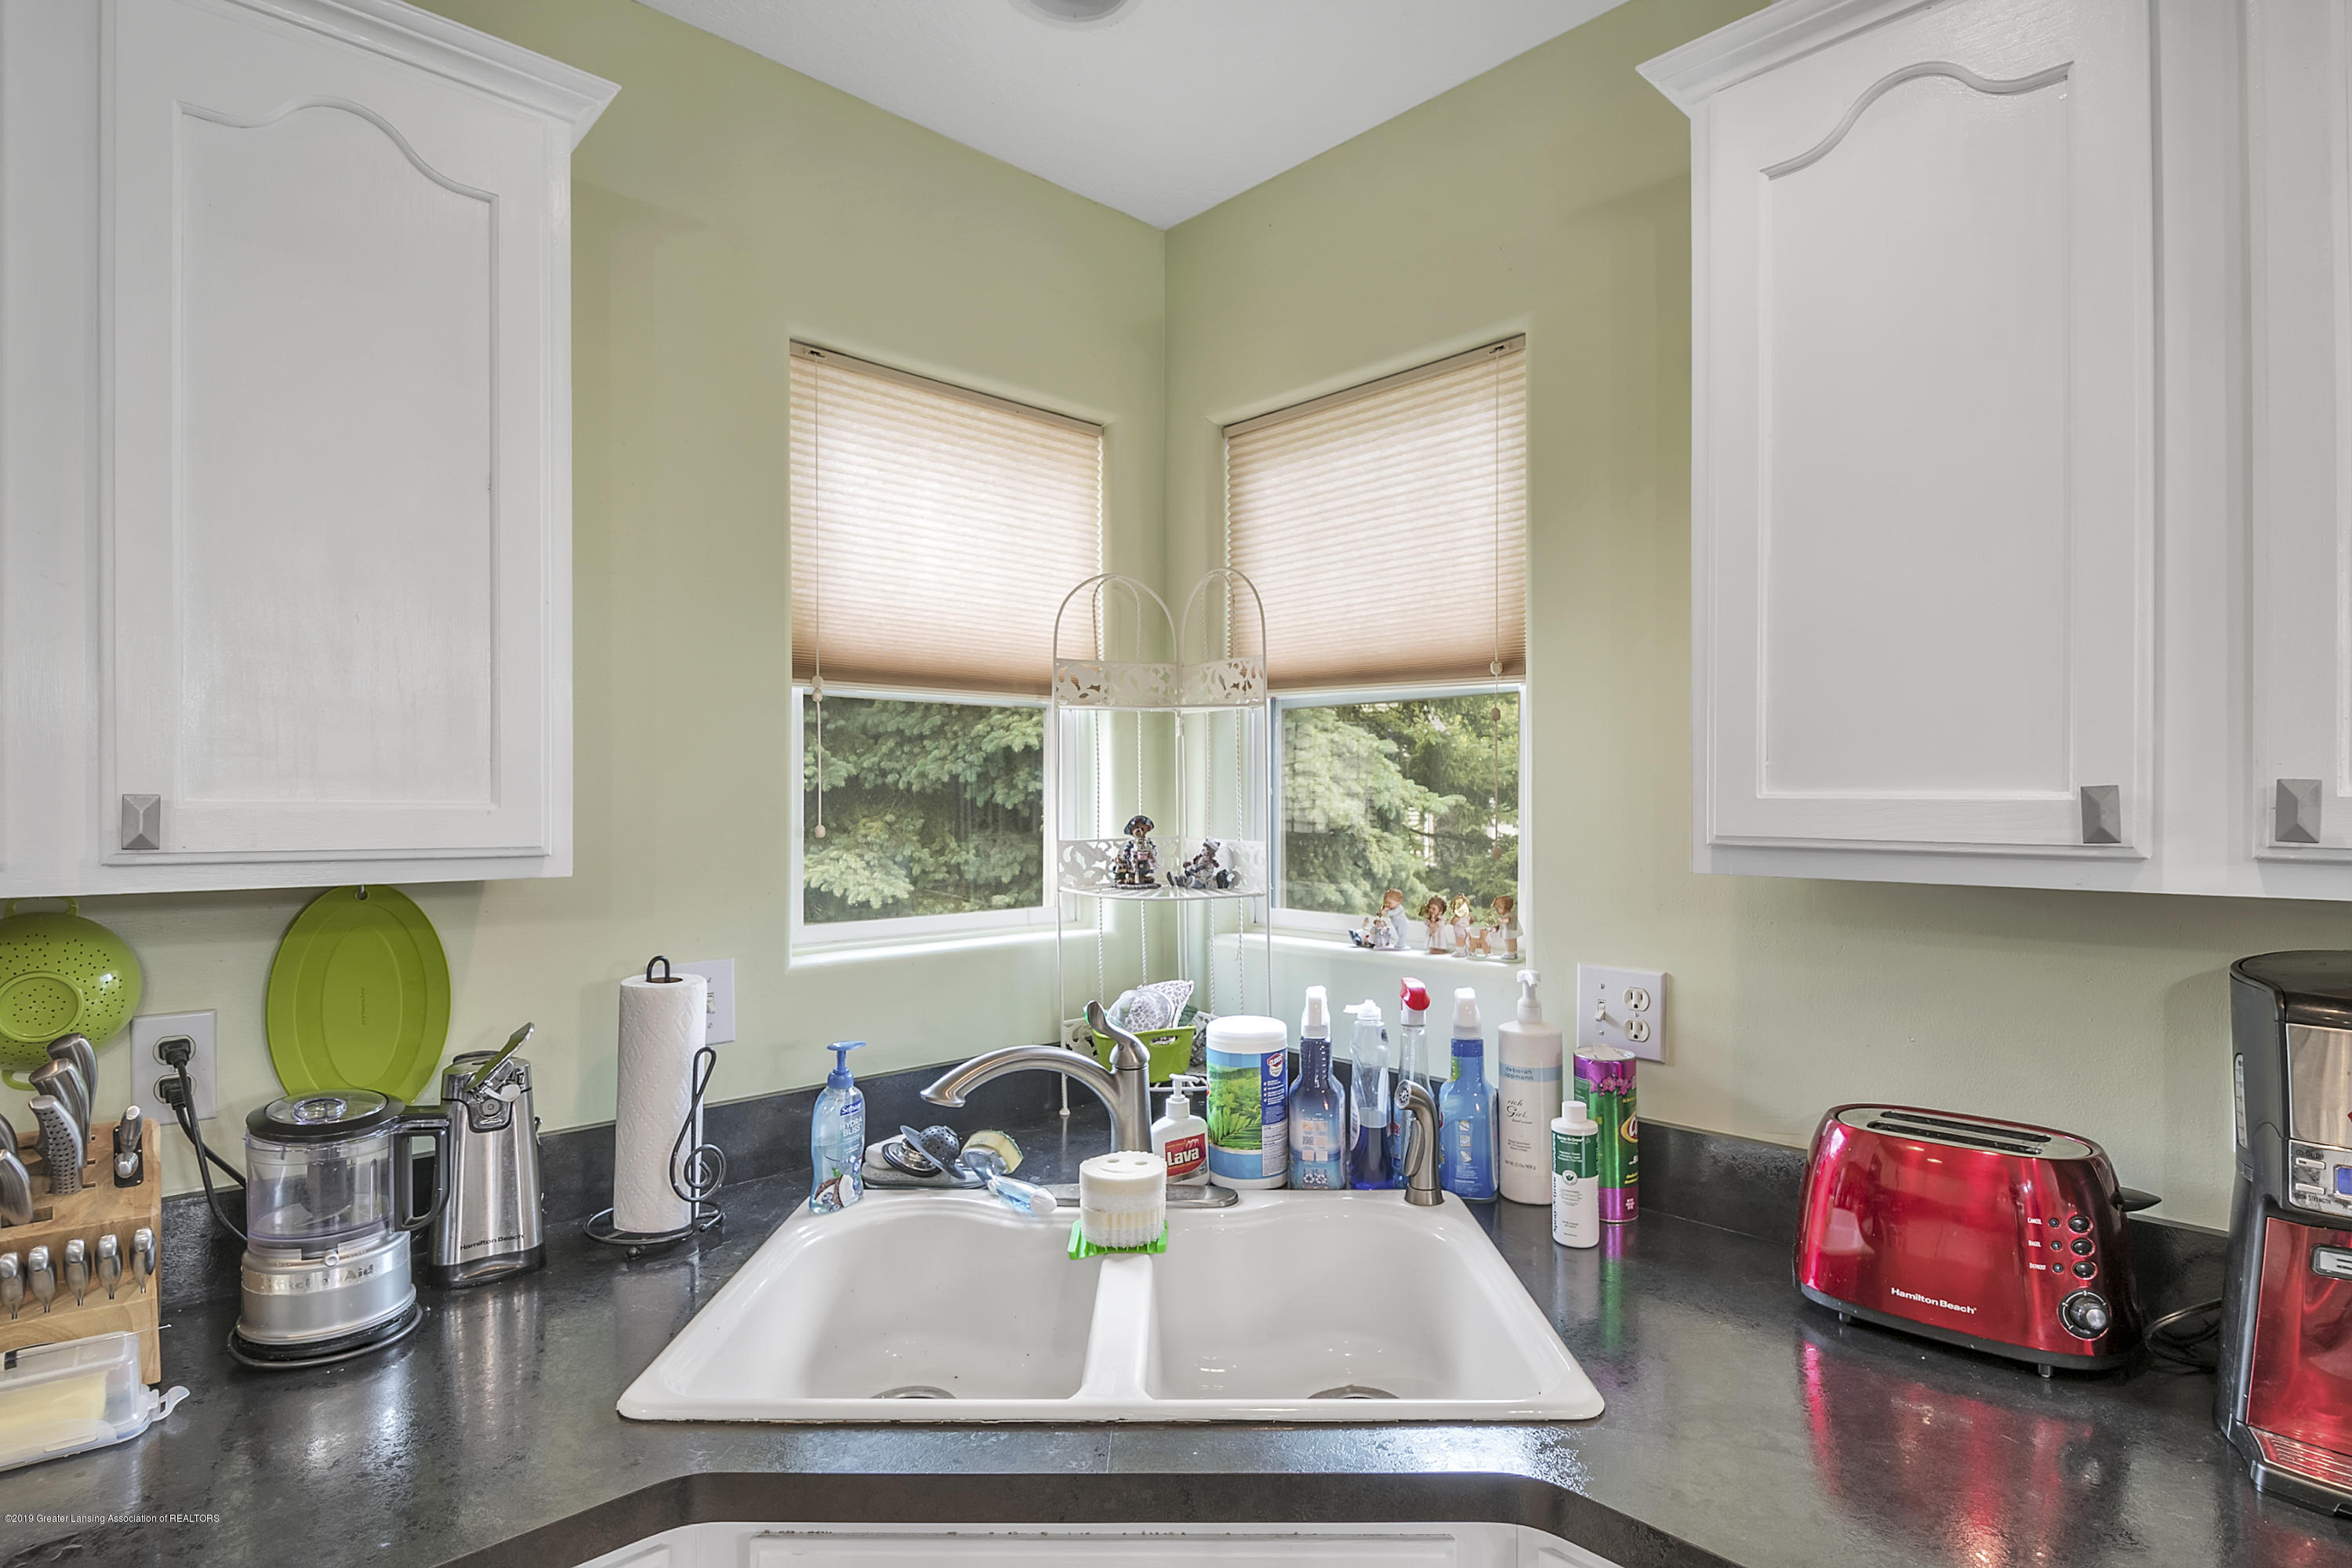 1349 Turtlecreek Cir - 1349-Turtlecreek-Cir-East-Lansing-window - 16